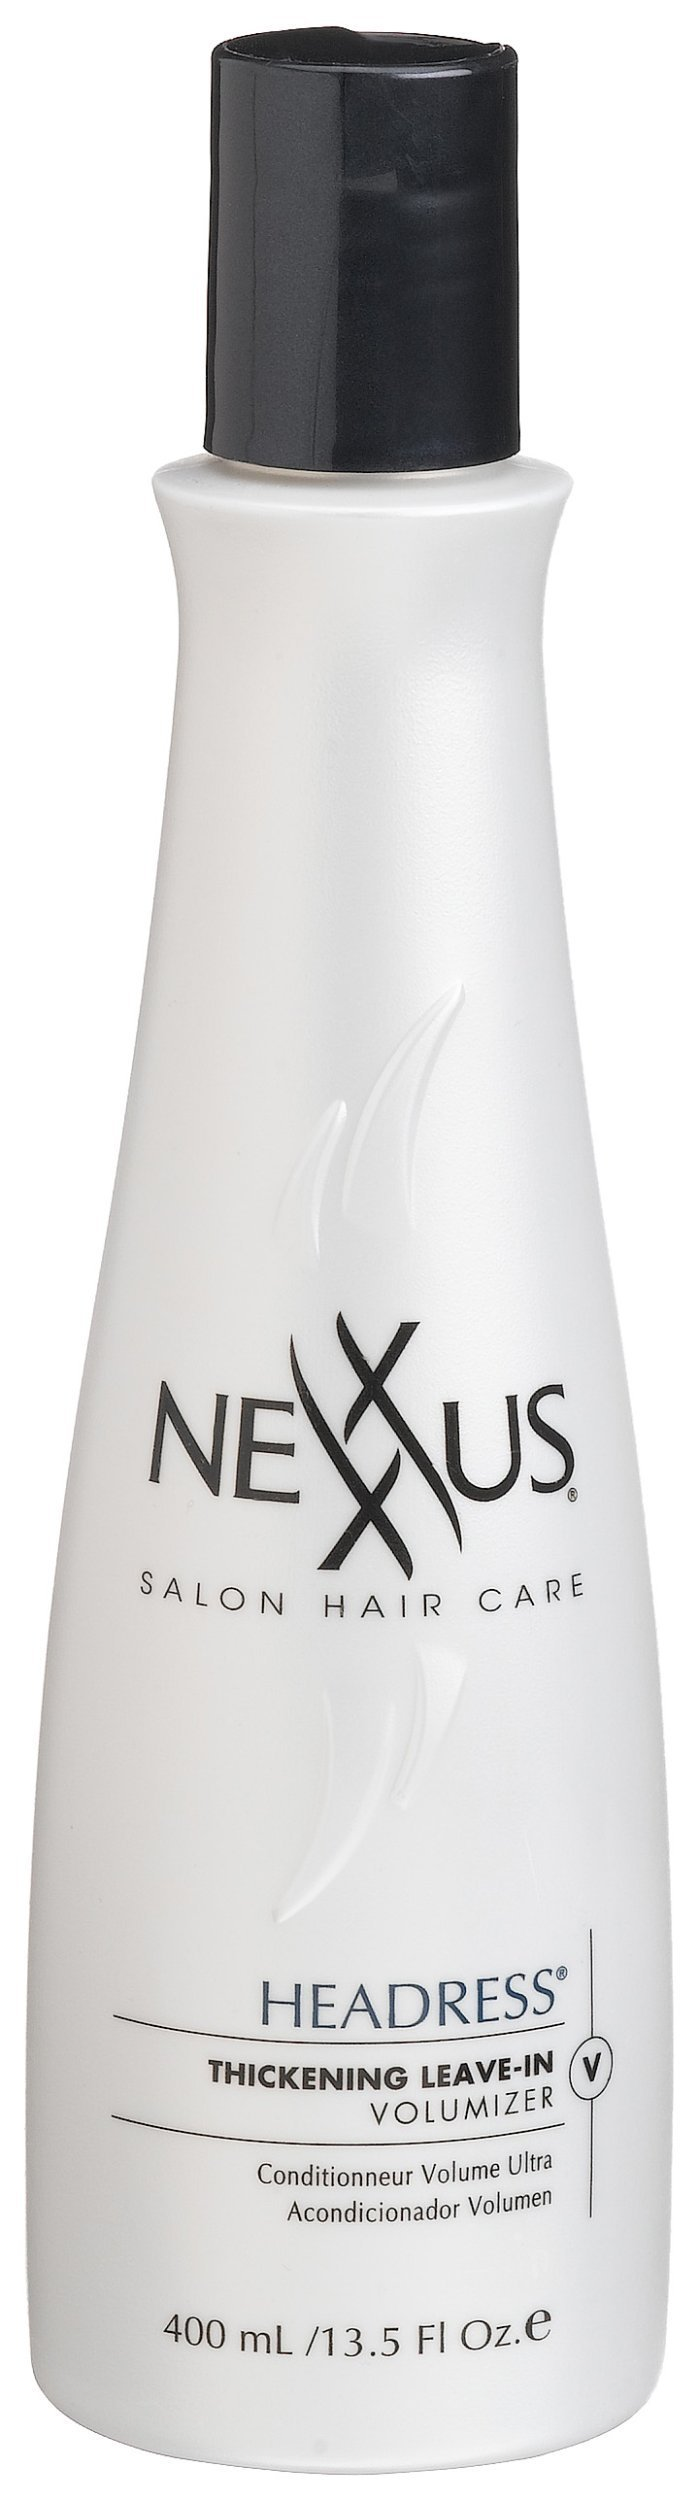 Nexxus Headress Thickening Leave-In Volumizer Conditioner, Packaging May Vary, 13.5-Ounce Bottle